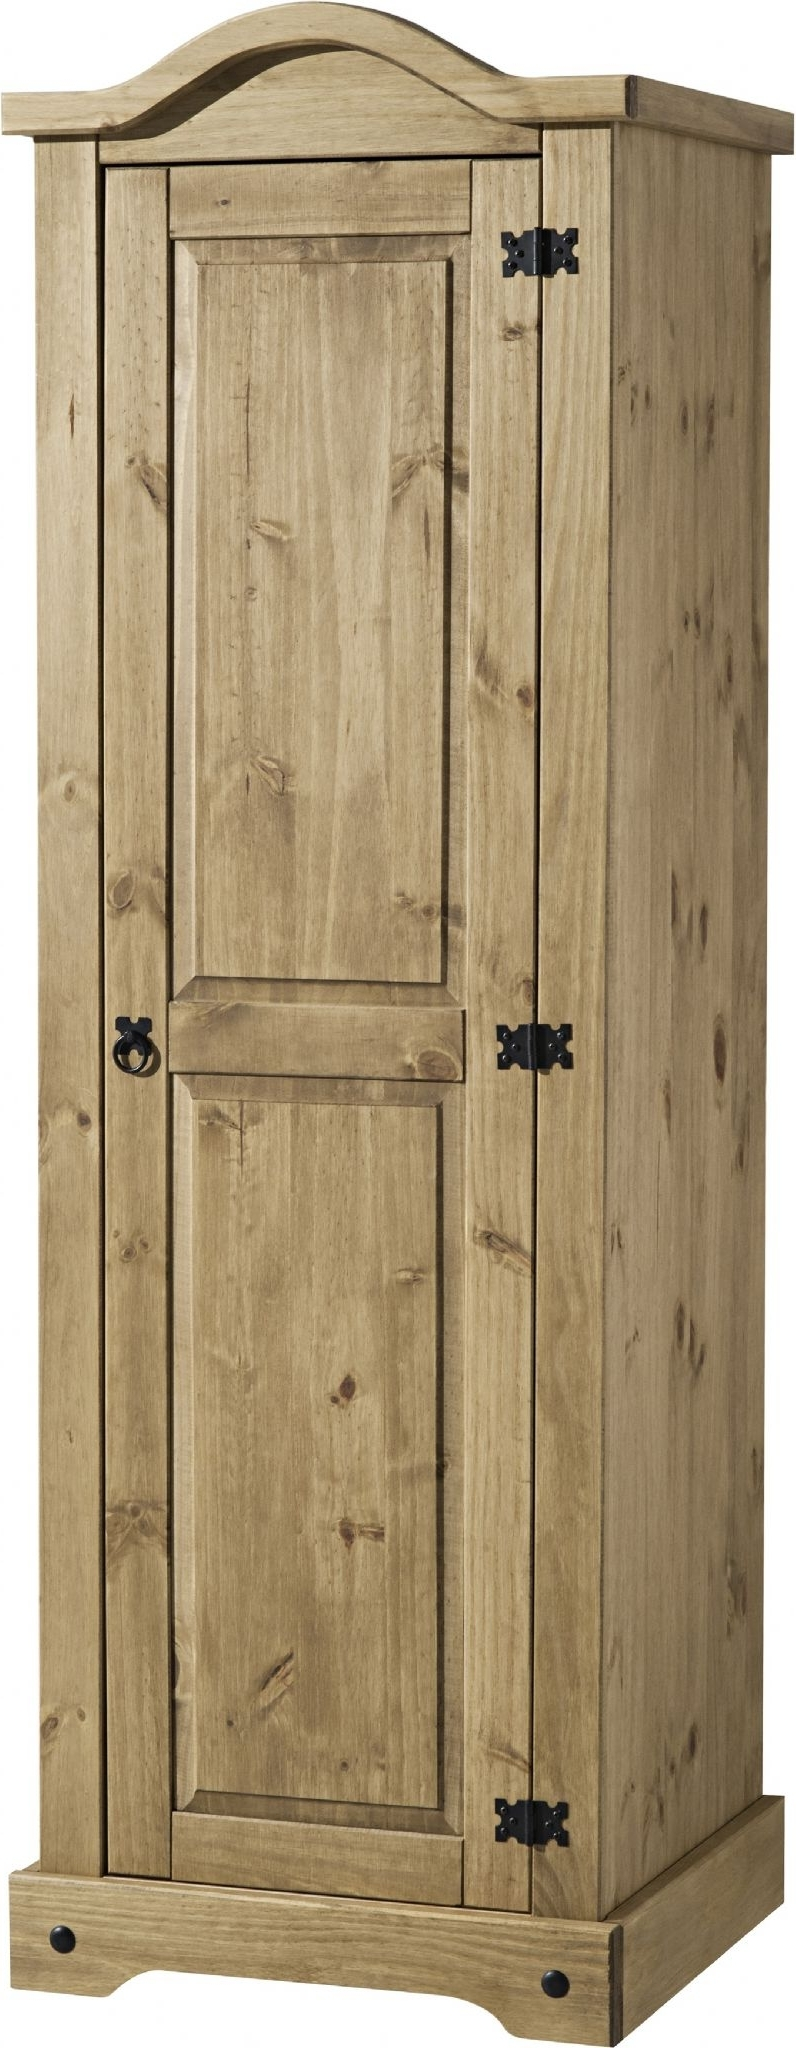 Corona Single One Mirrored Door 1 Drawer Armoire Wardrobe With Fashionable Single Pine Wardrobes (View 2 of 15)